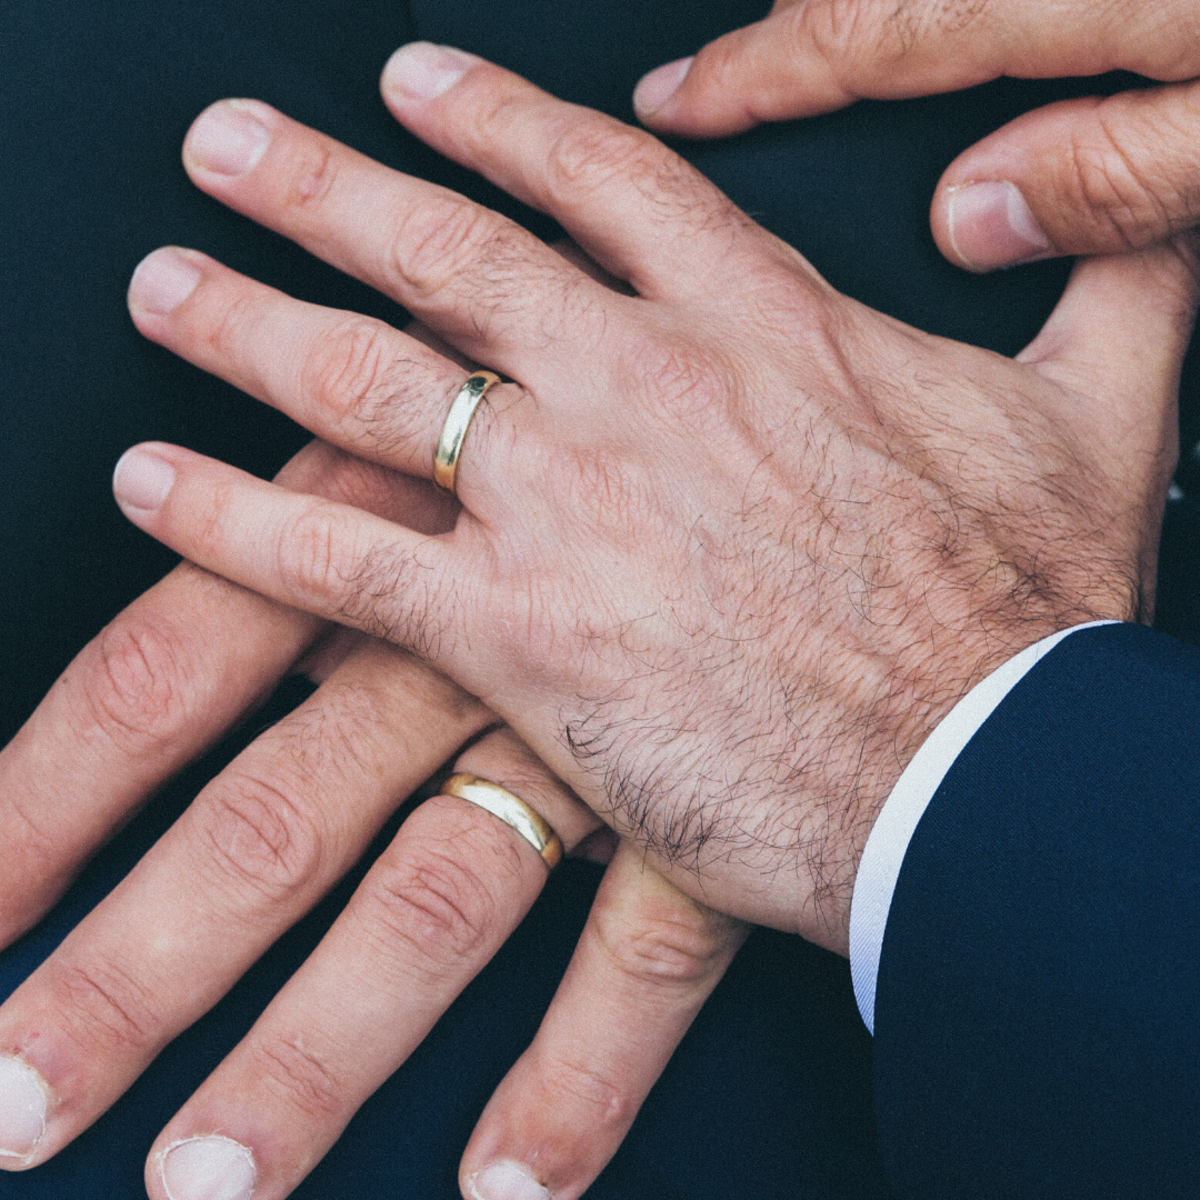 Can you see sharing your big day with either gender or non-binary person?